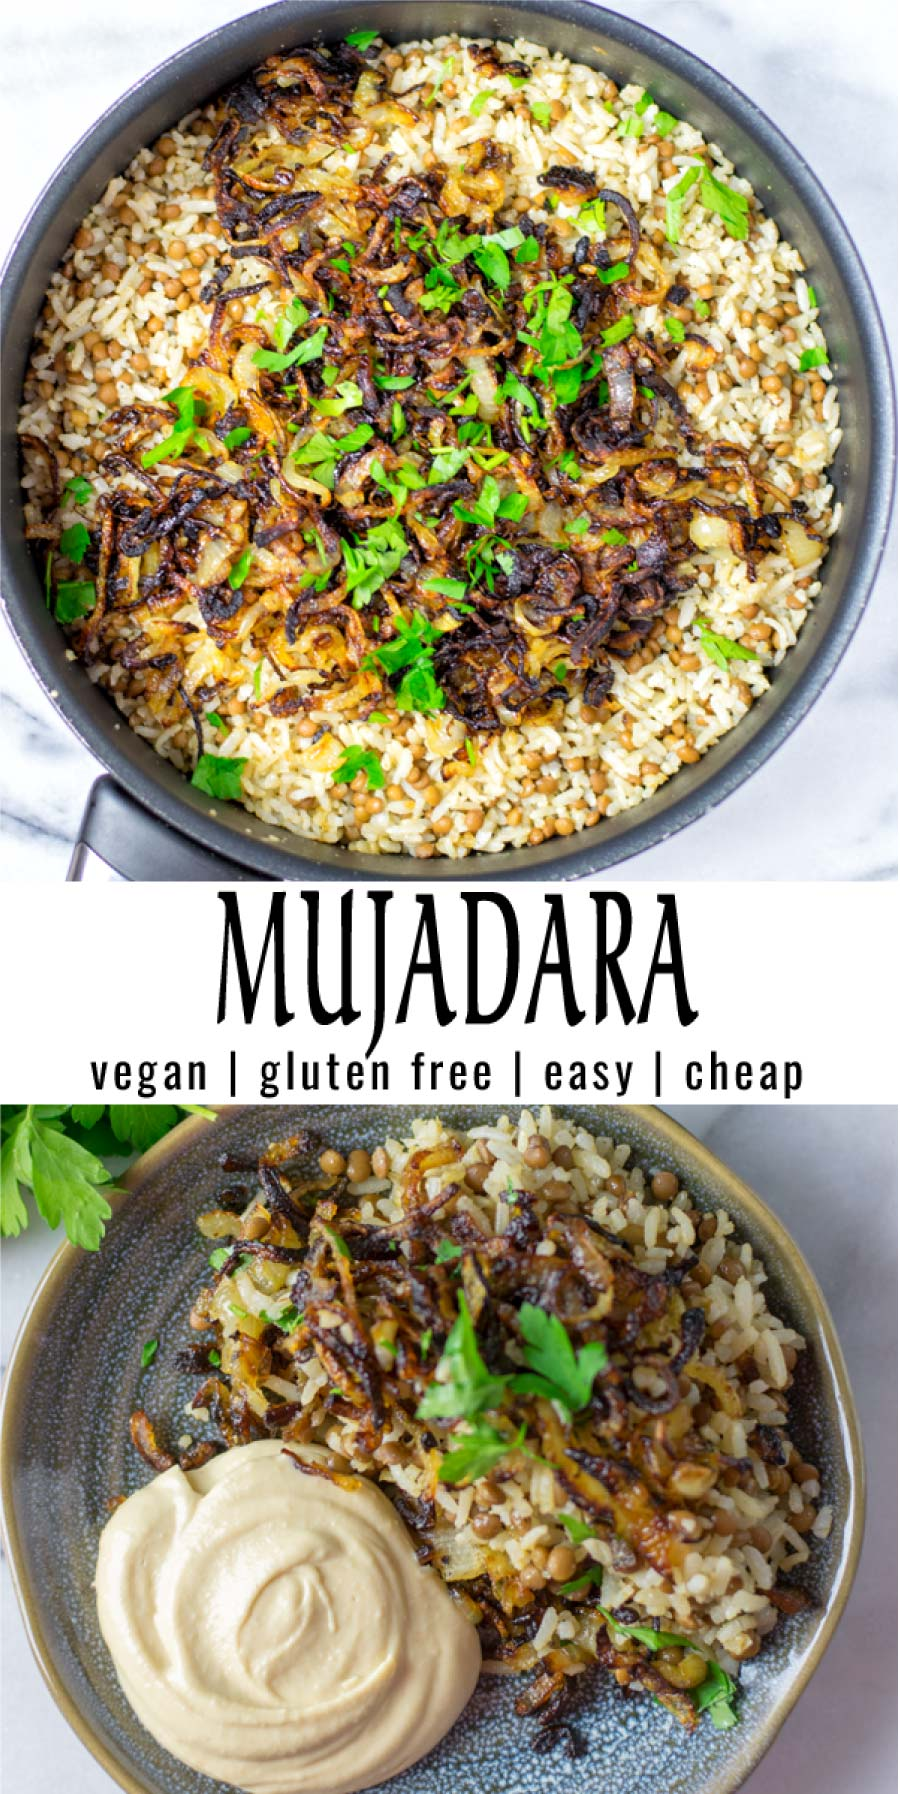 Easy and inexpensive: this Mujadara is super easy to make with simple ingredients. Full of flavor and texture that the whole family will love. Naturally vegan and seriously delicious. #vegan #dairyfree #glutenfree #vegetarian #contentednesscooking #mealprep #dinner #lunch #mujadara